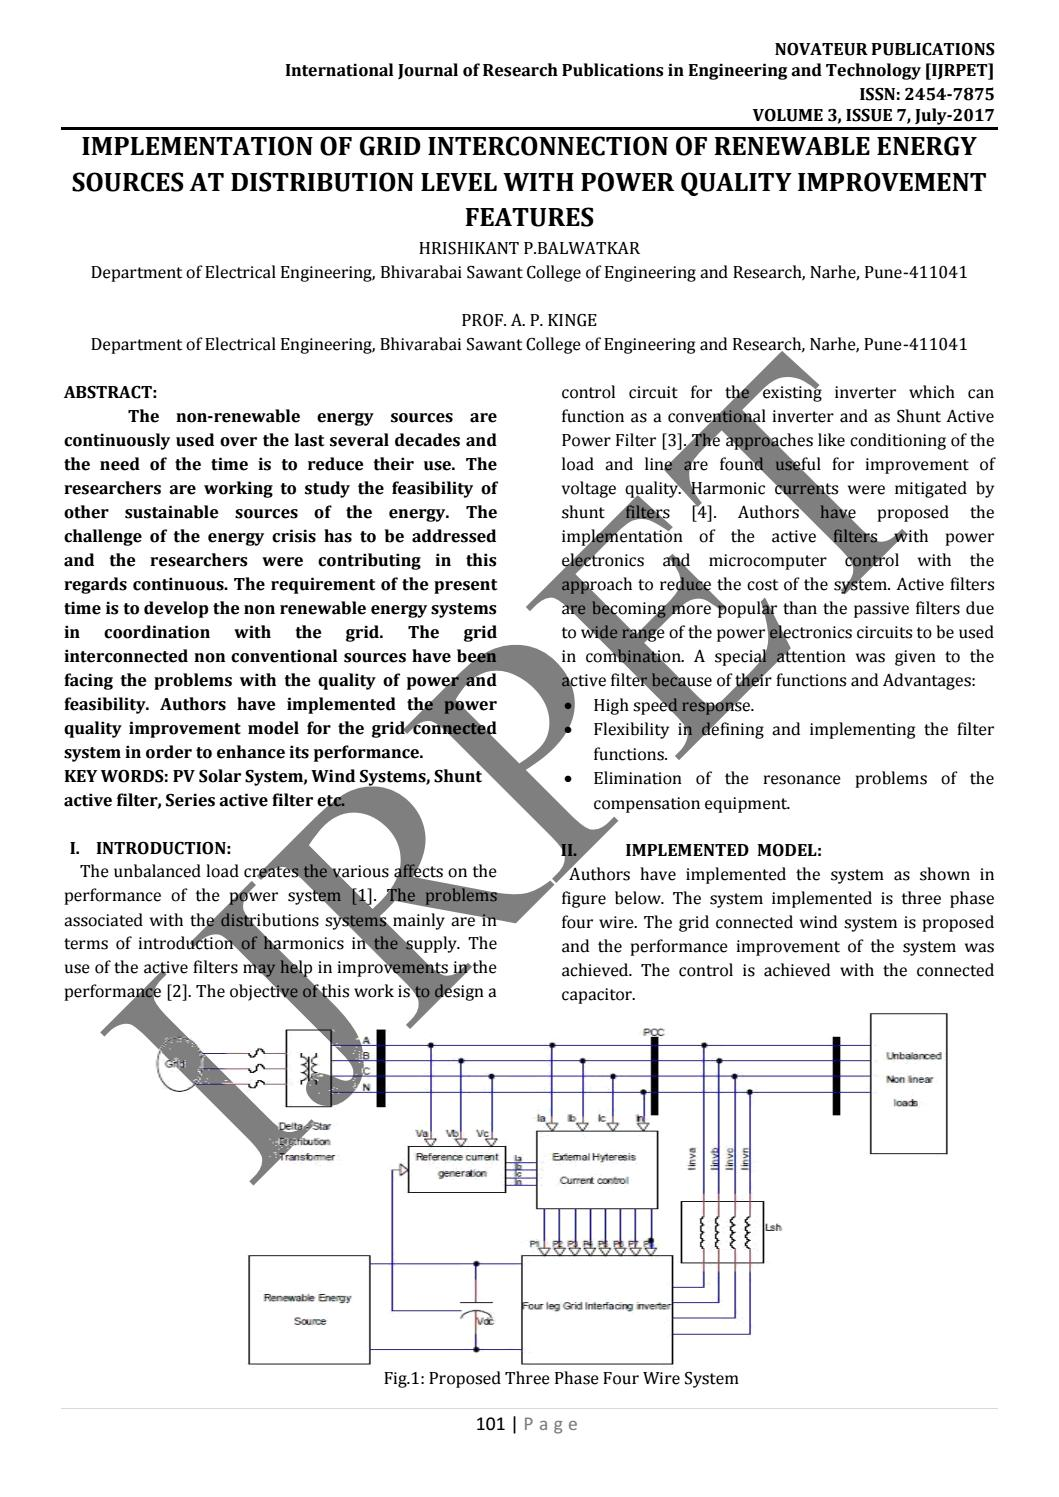 JournalNX- GRID INTERCONNECTION OF RENEWABLE ENERGY SOURCES